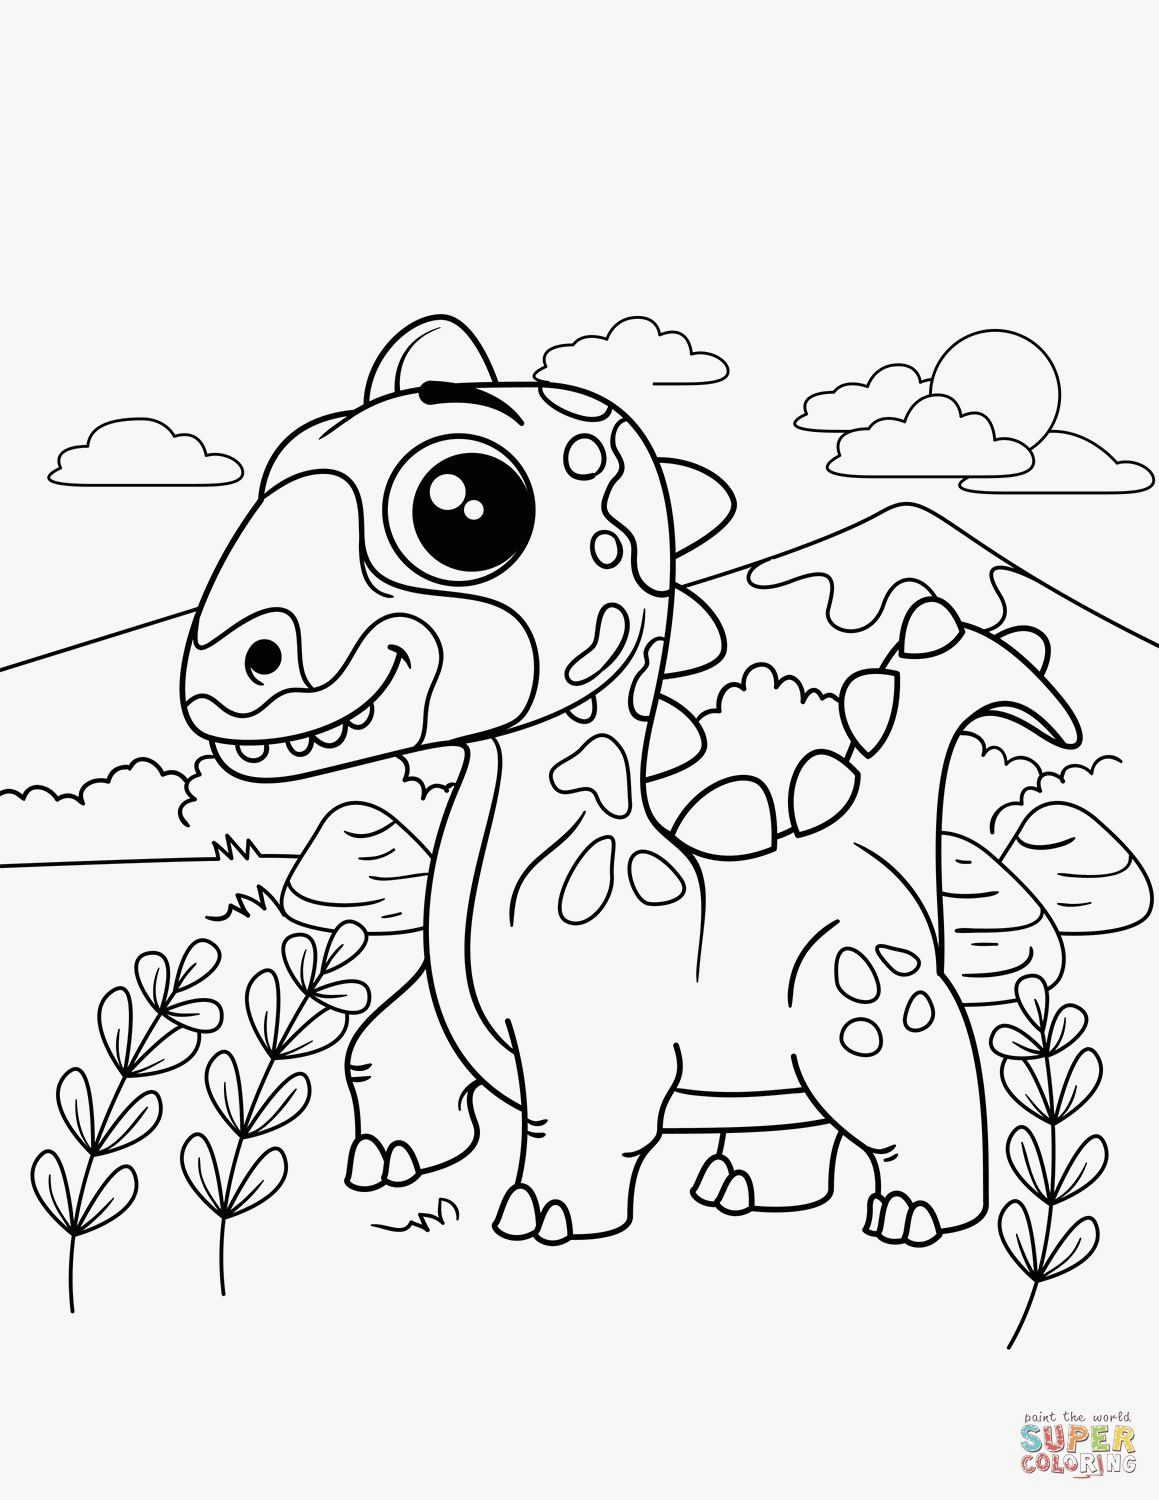 75 New Collection Of Free Coloring Pages Pdf Coloring And